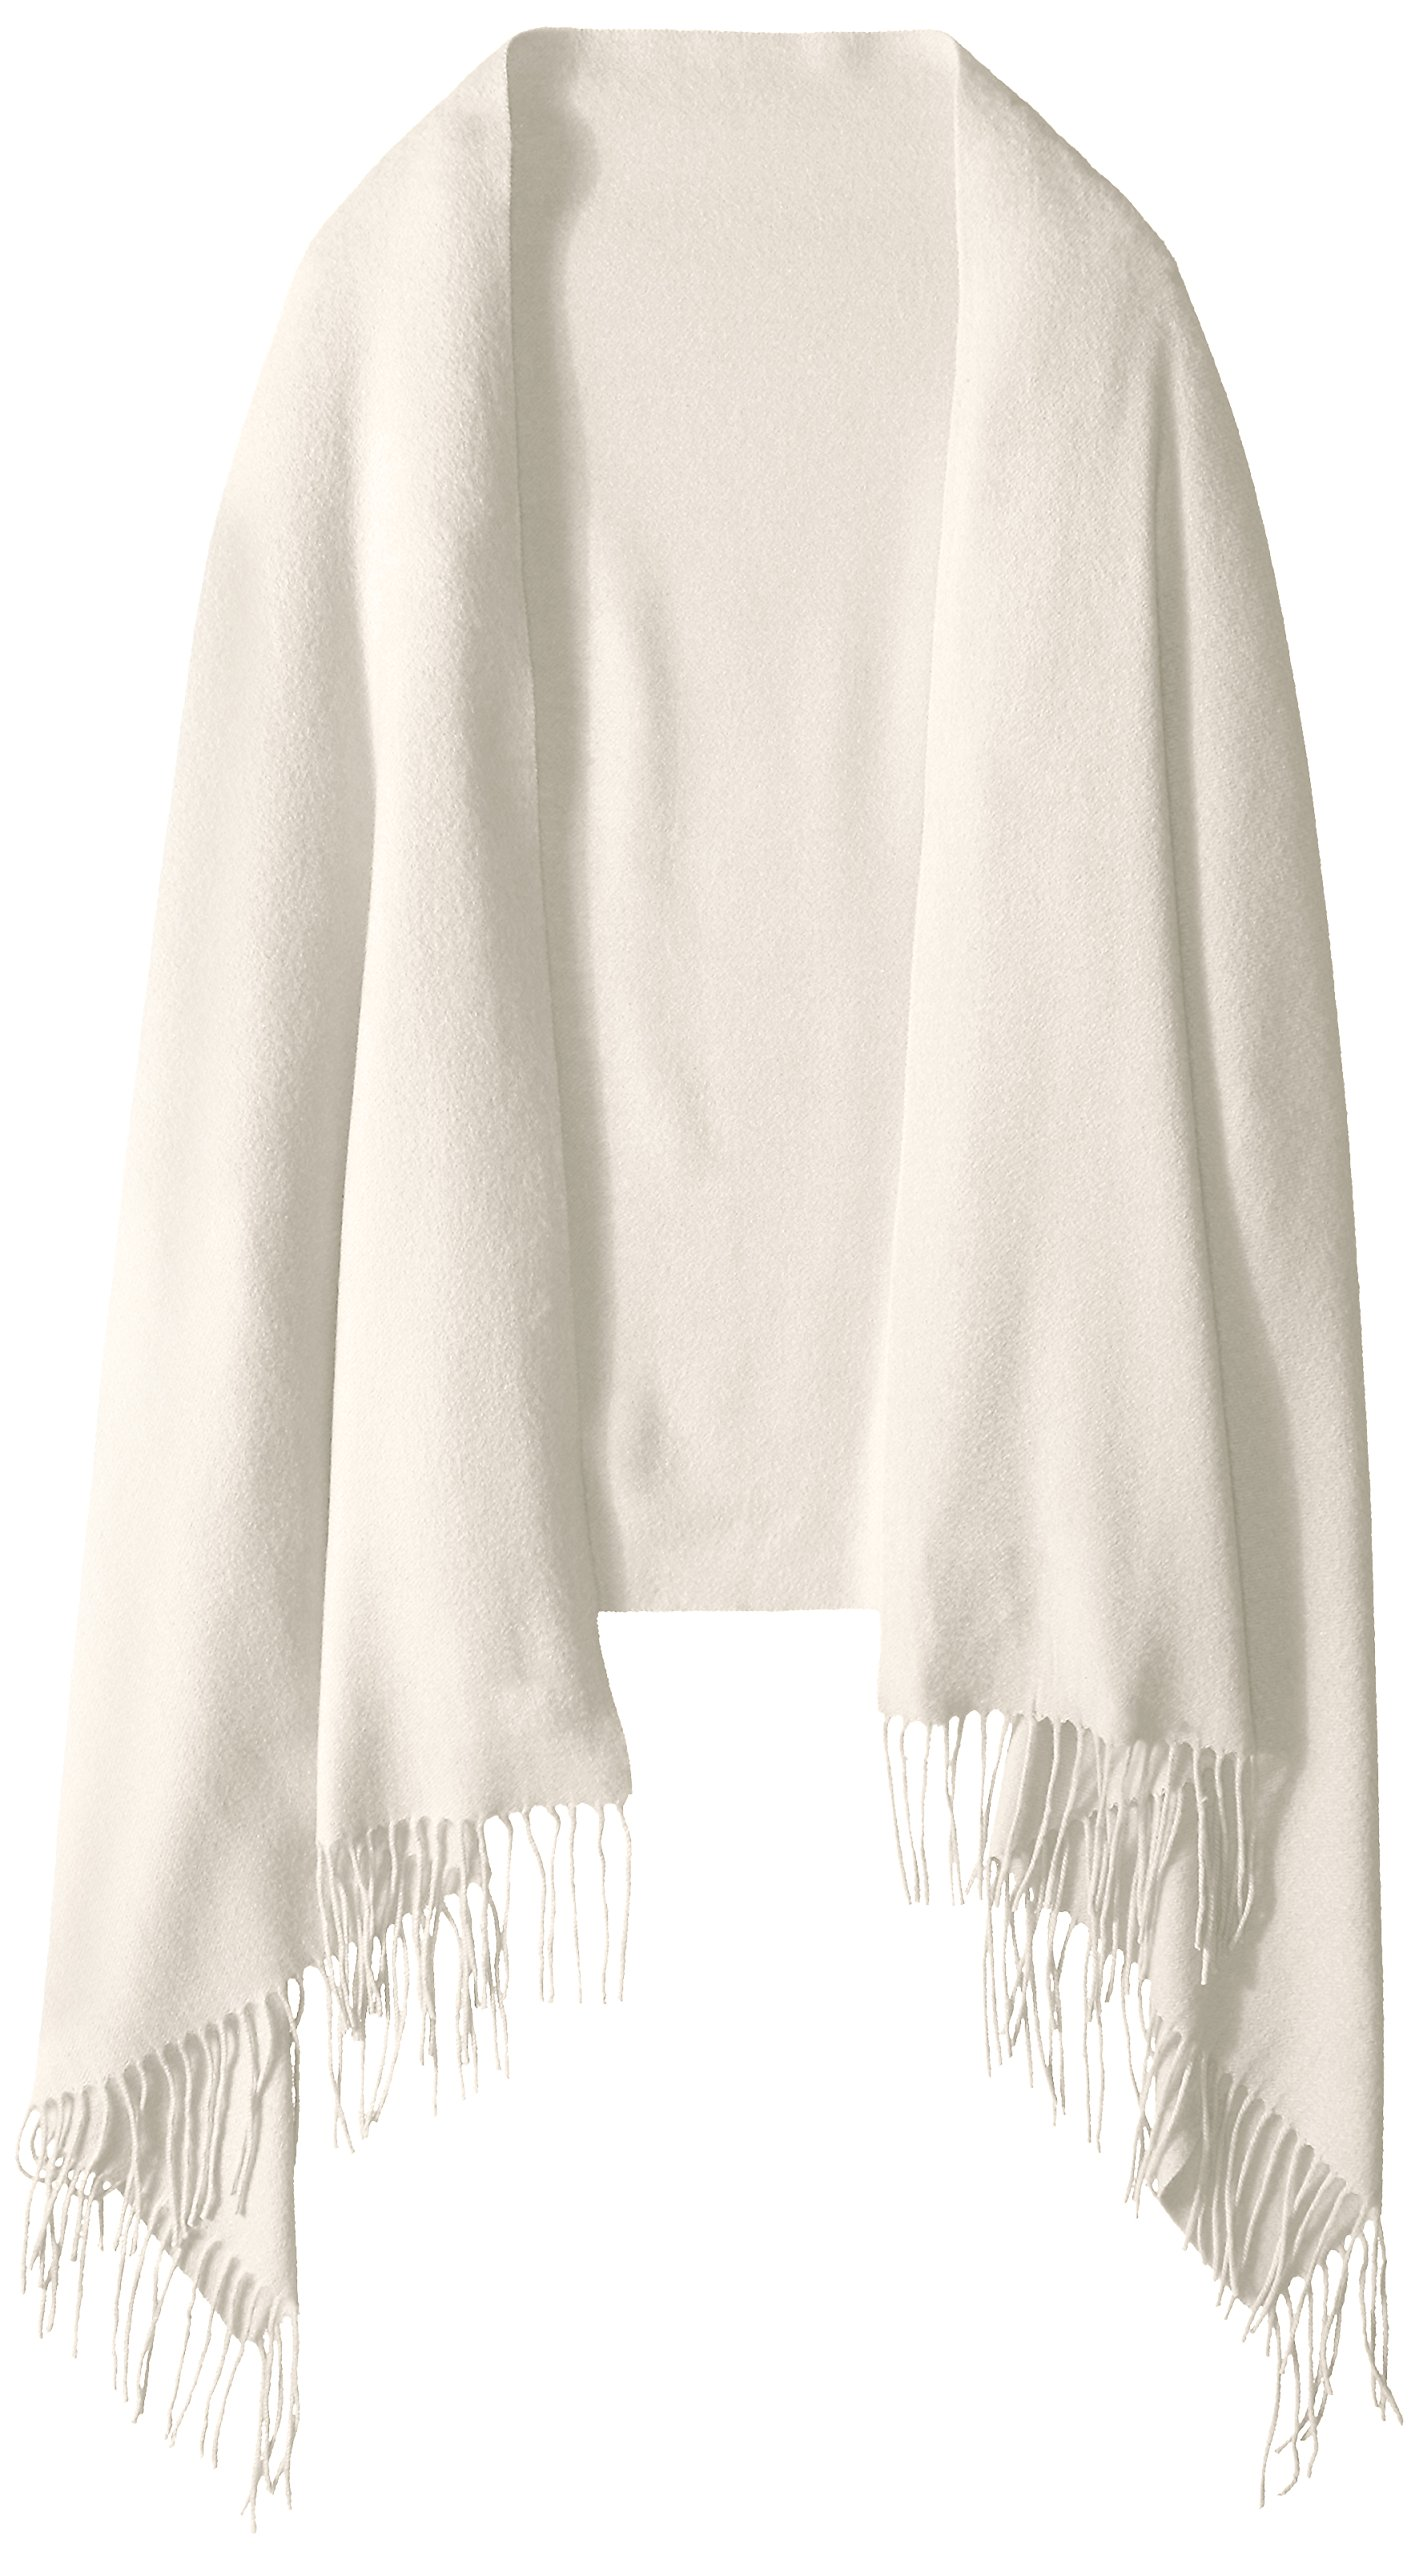 Phenix Cashmere Women's Solid 100 Percent Cashmere Wrap, Cream, One Size